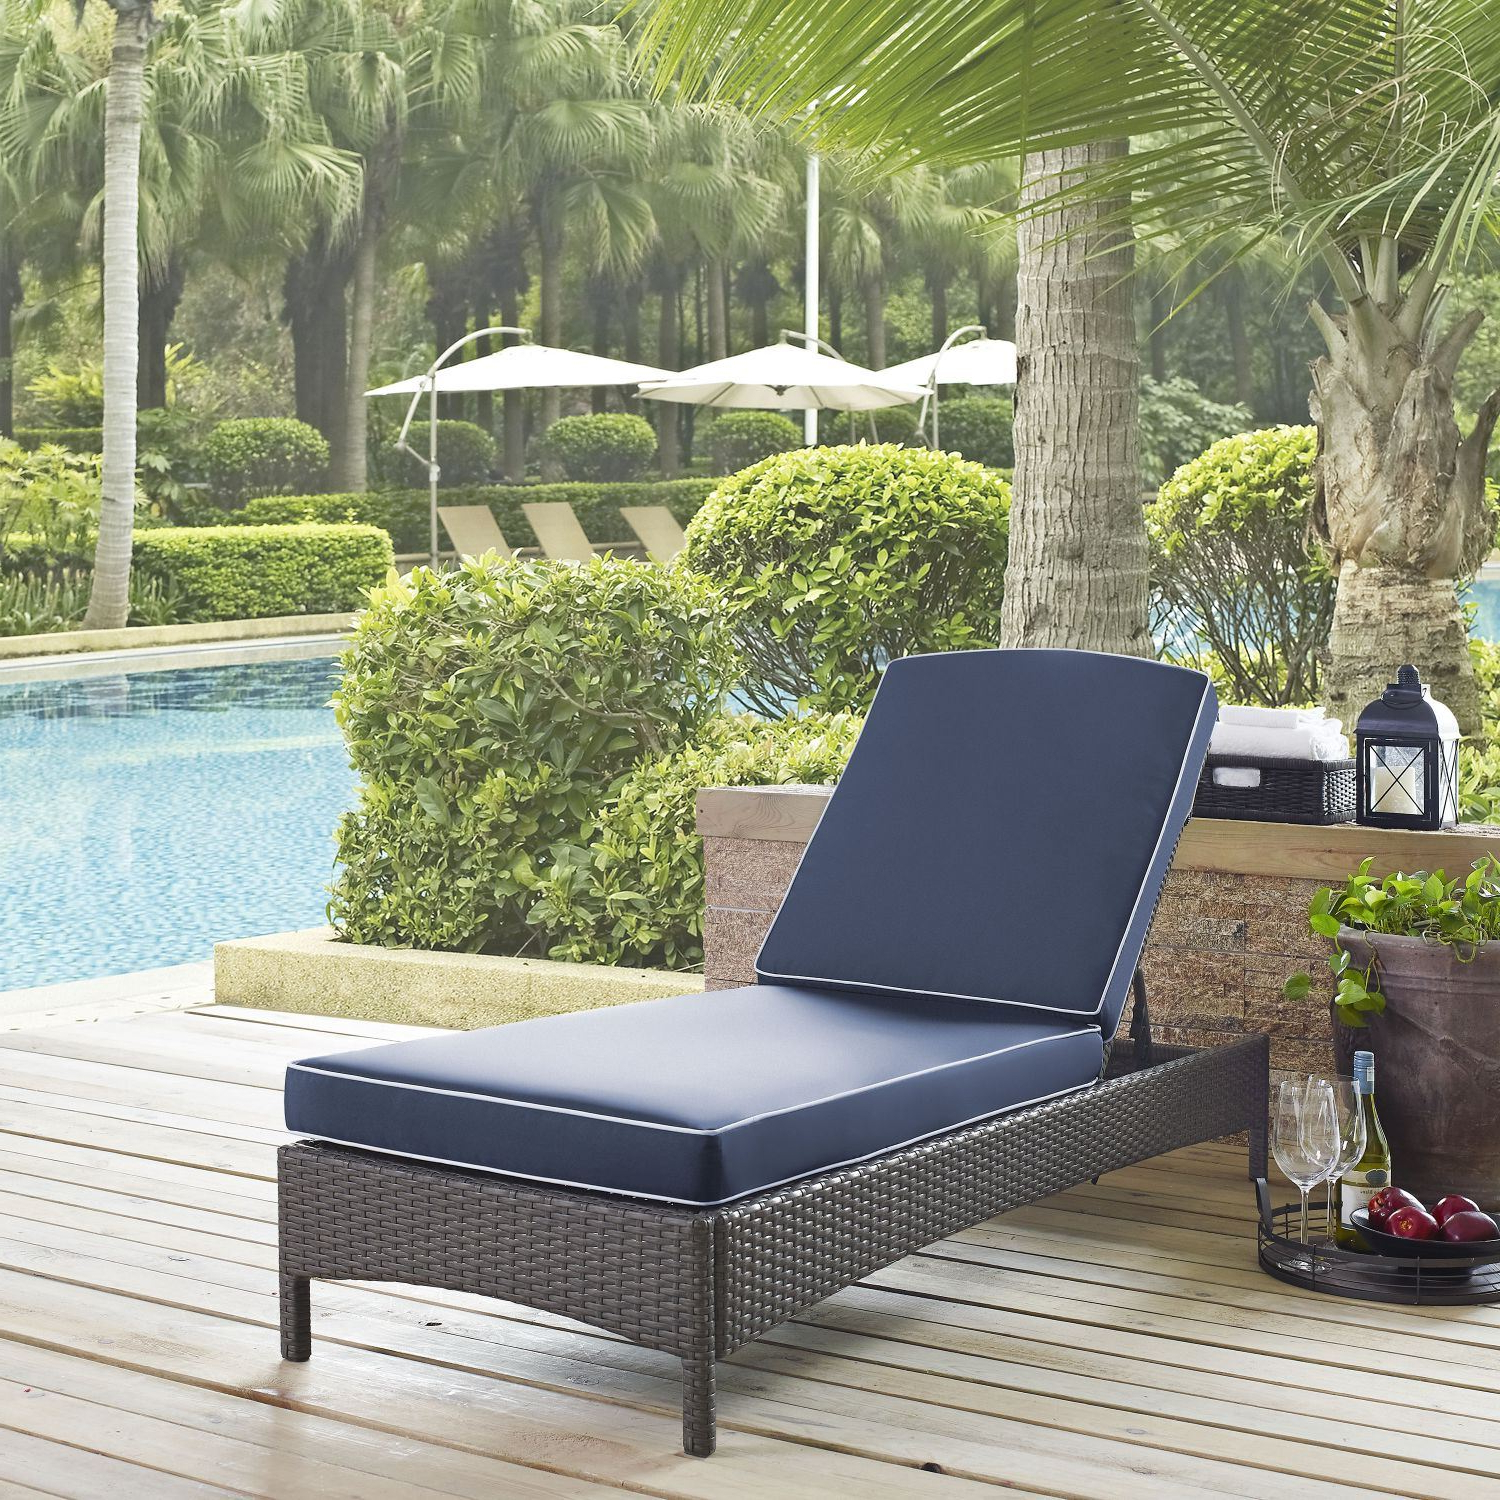 Outdoor Wicker Chaise Lounge Chairs Throughout Favorite Palm Harbor Outdoor Wicker Chaise Lounge*d (View 25 of 25)